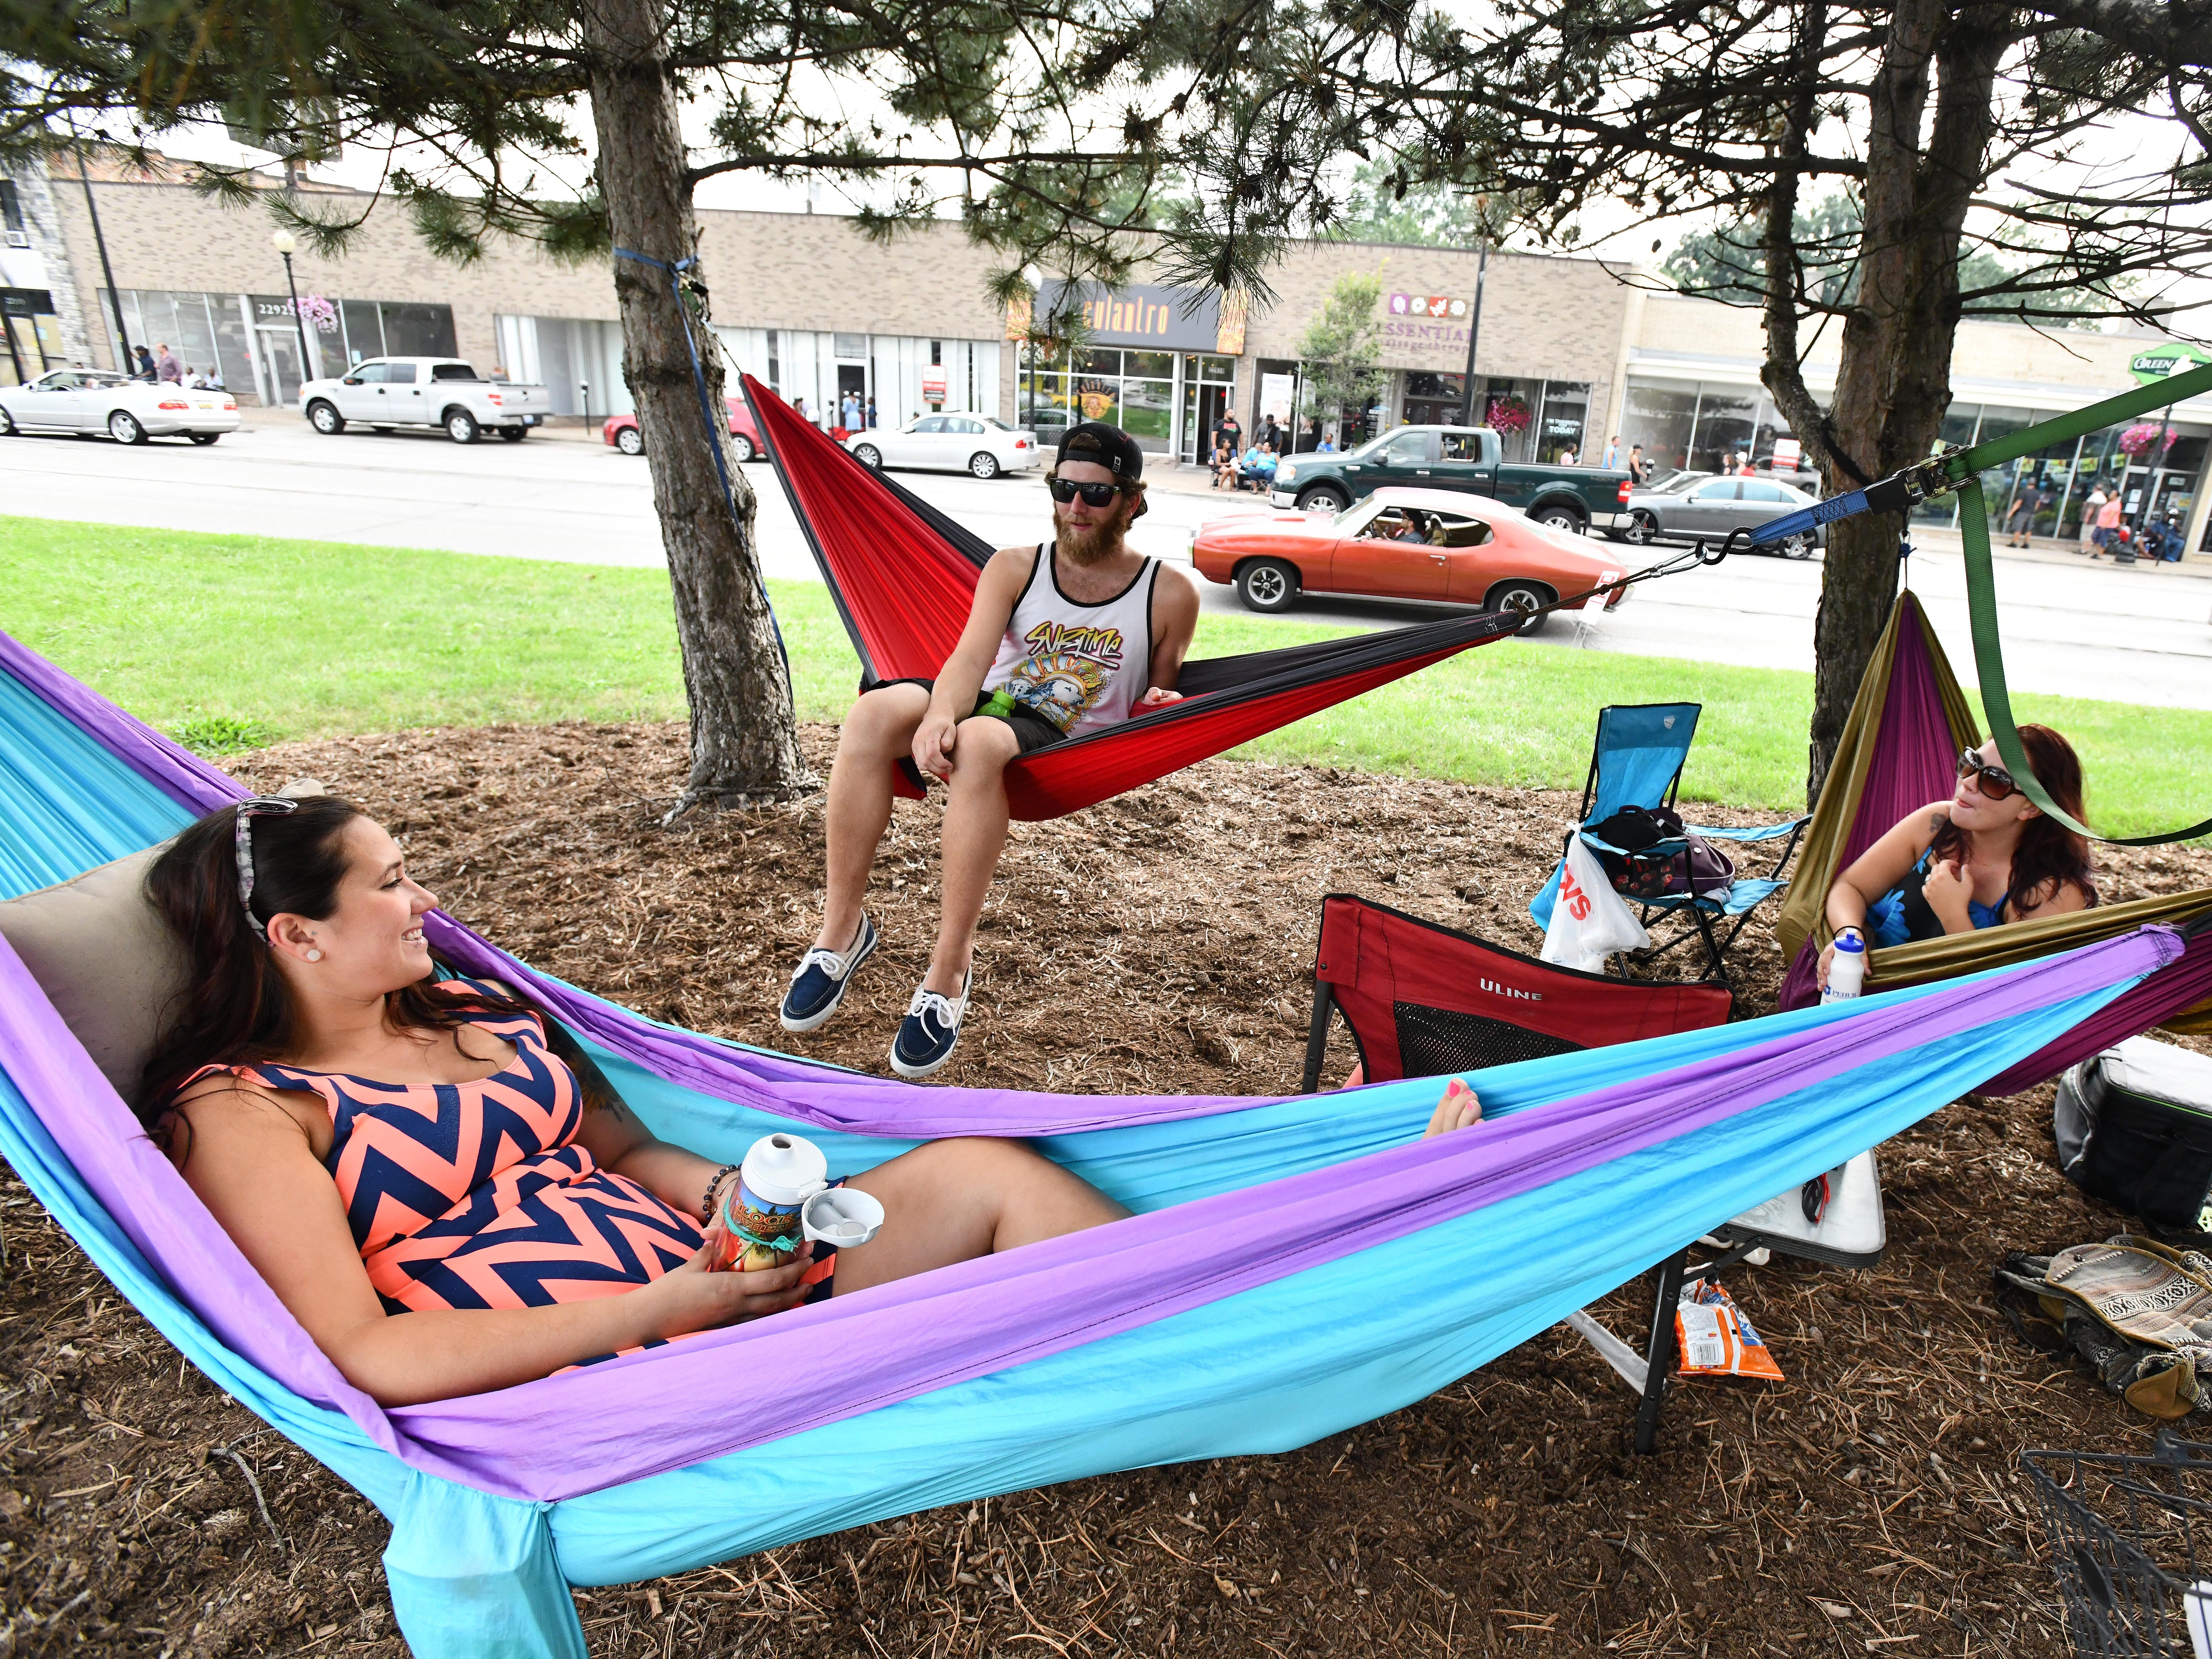 Ashley Rathka, Corey Walsh and Austen Walsh find the best spot for Dream Cruise watching on Woodward, hanging hammocks from trees in the middle of the divided highway in Ferndale.